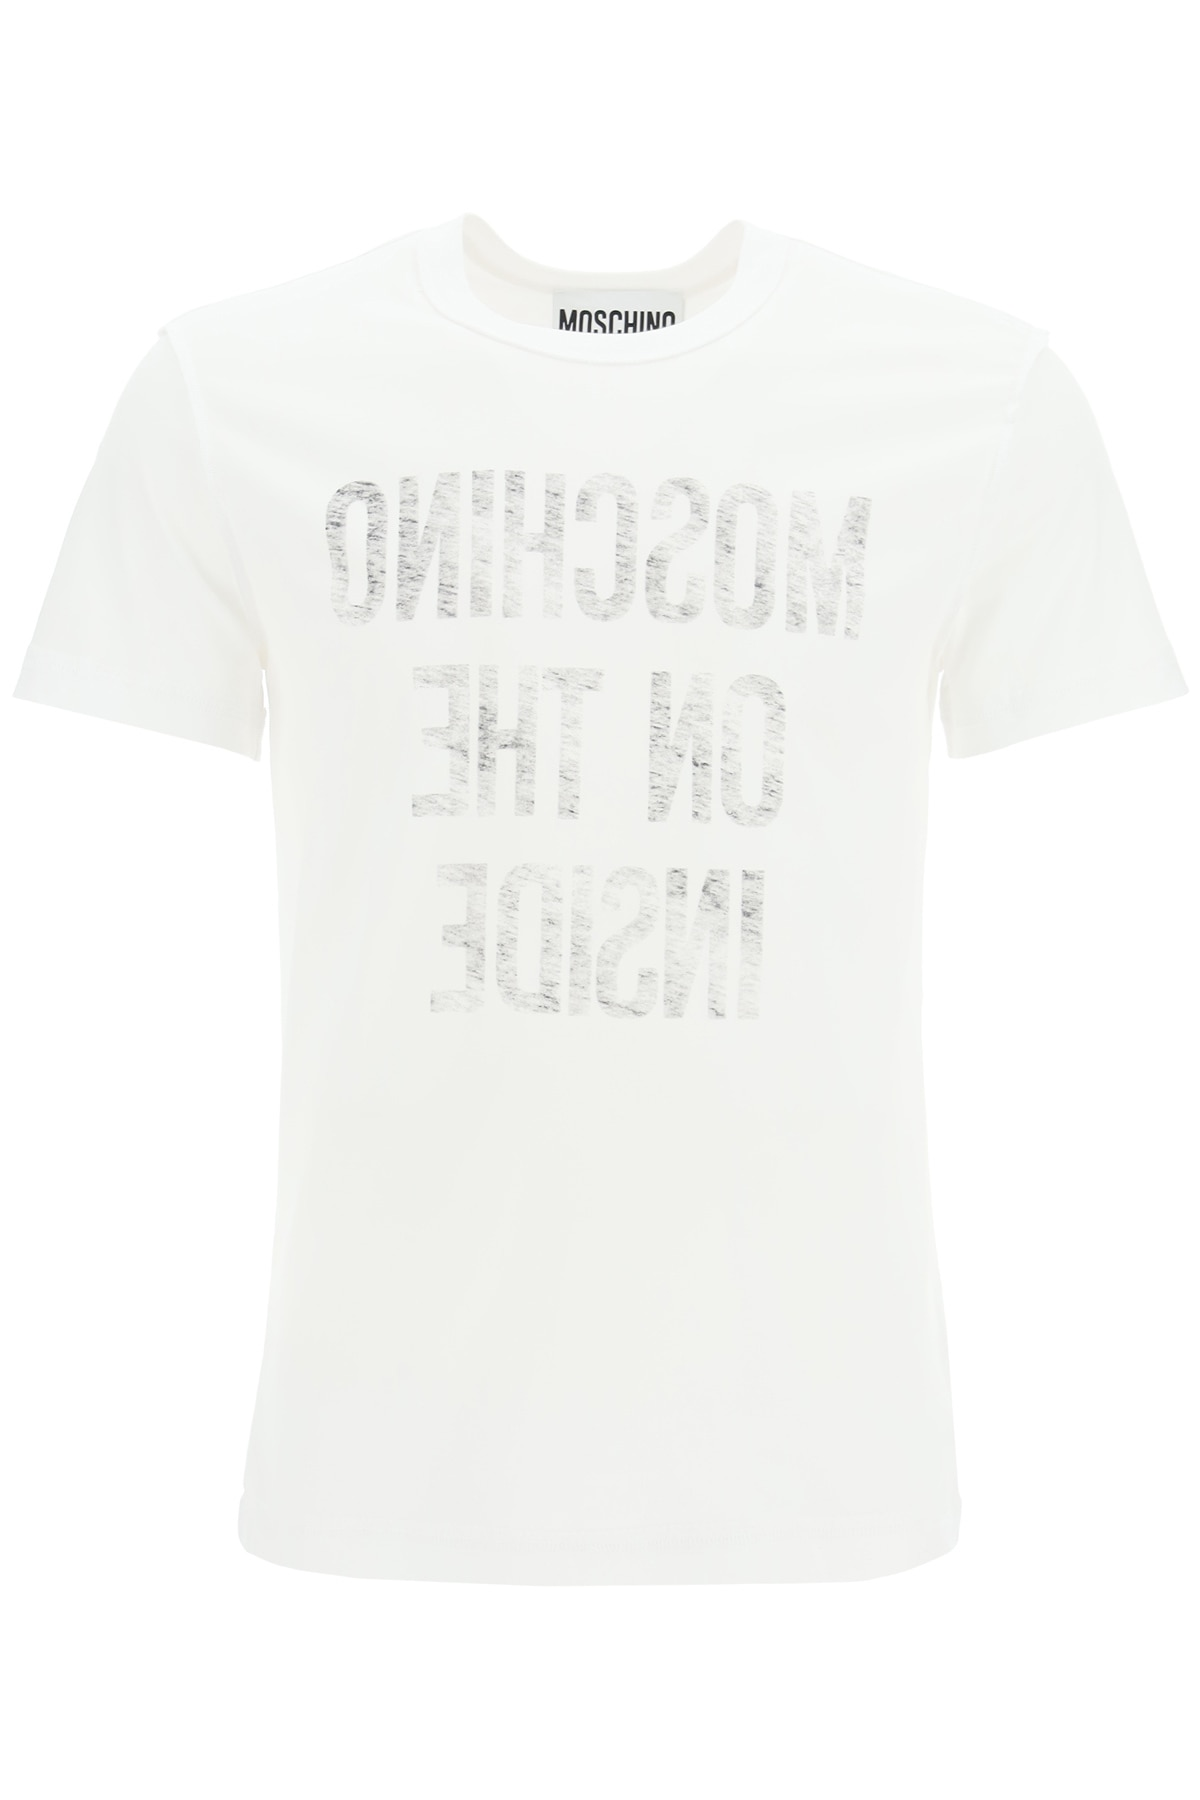 MOSCHINO INSIDE OUT T-SHIRT WITH SLOGAN 50 White, Grey Cotton